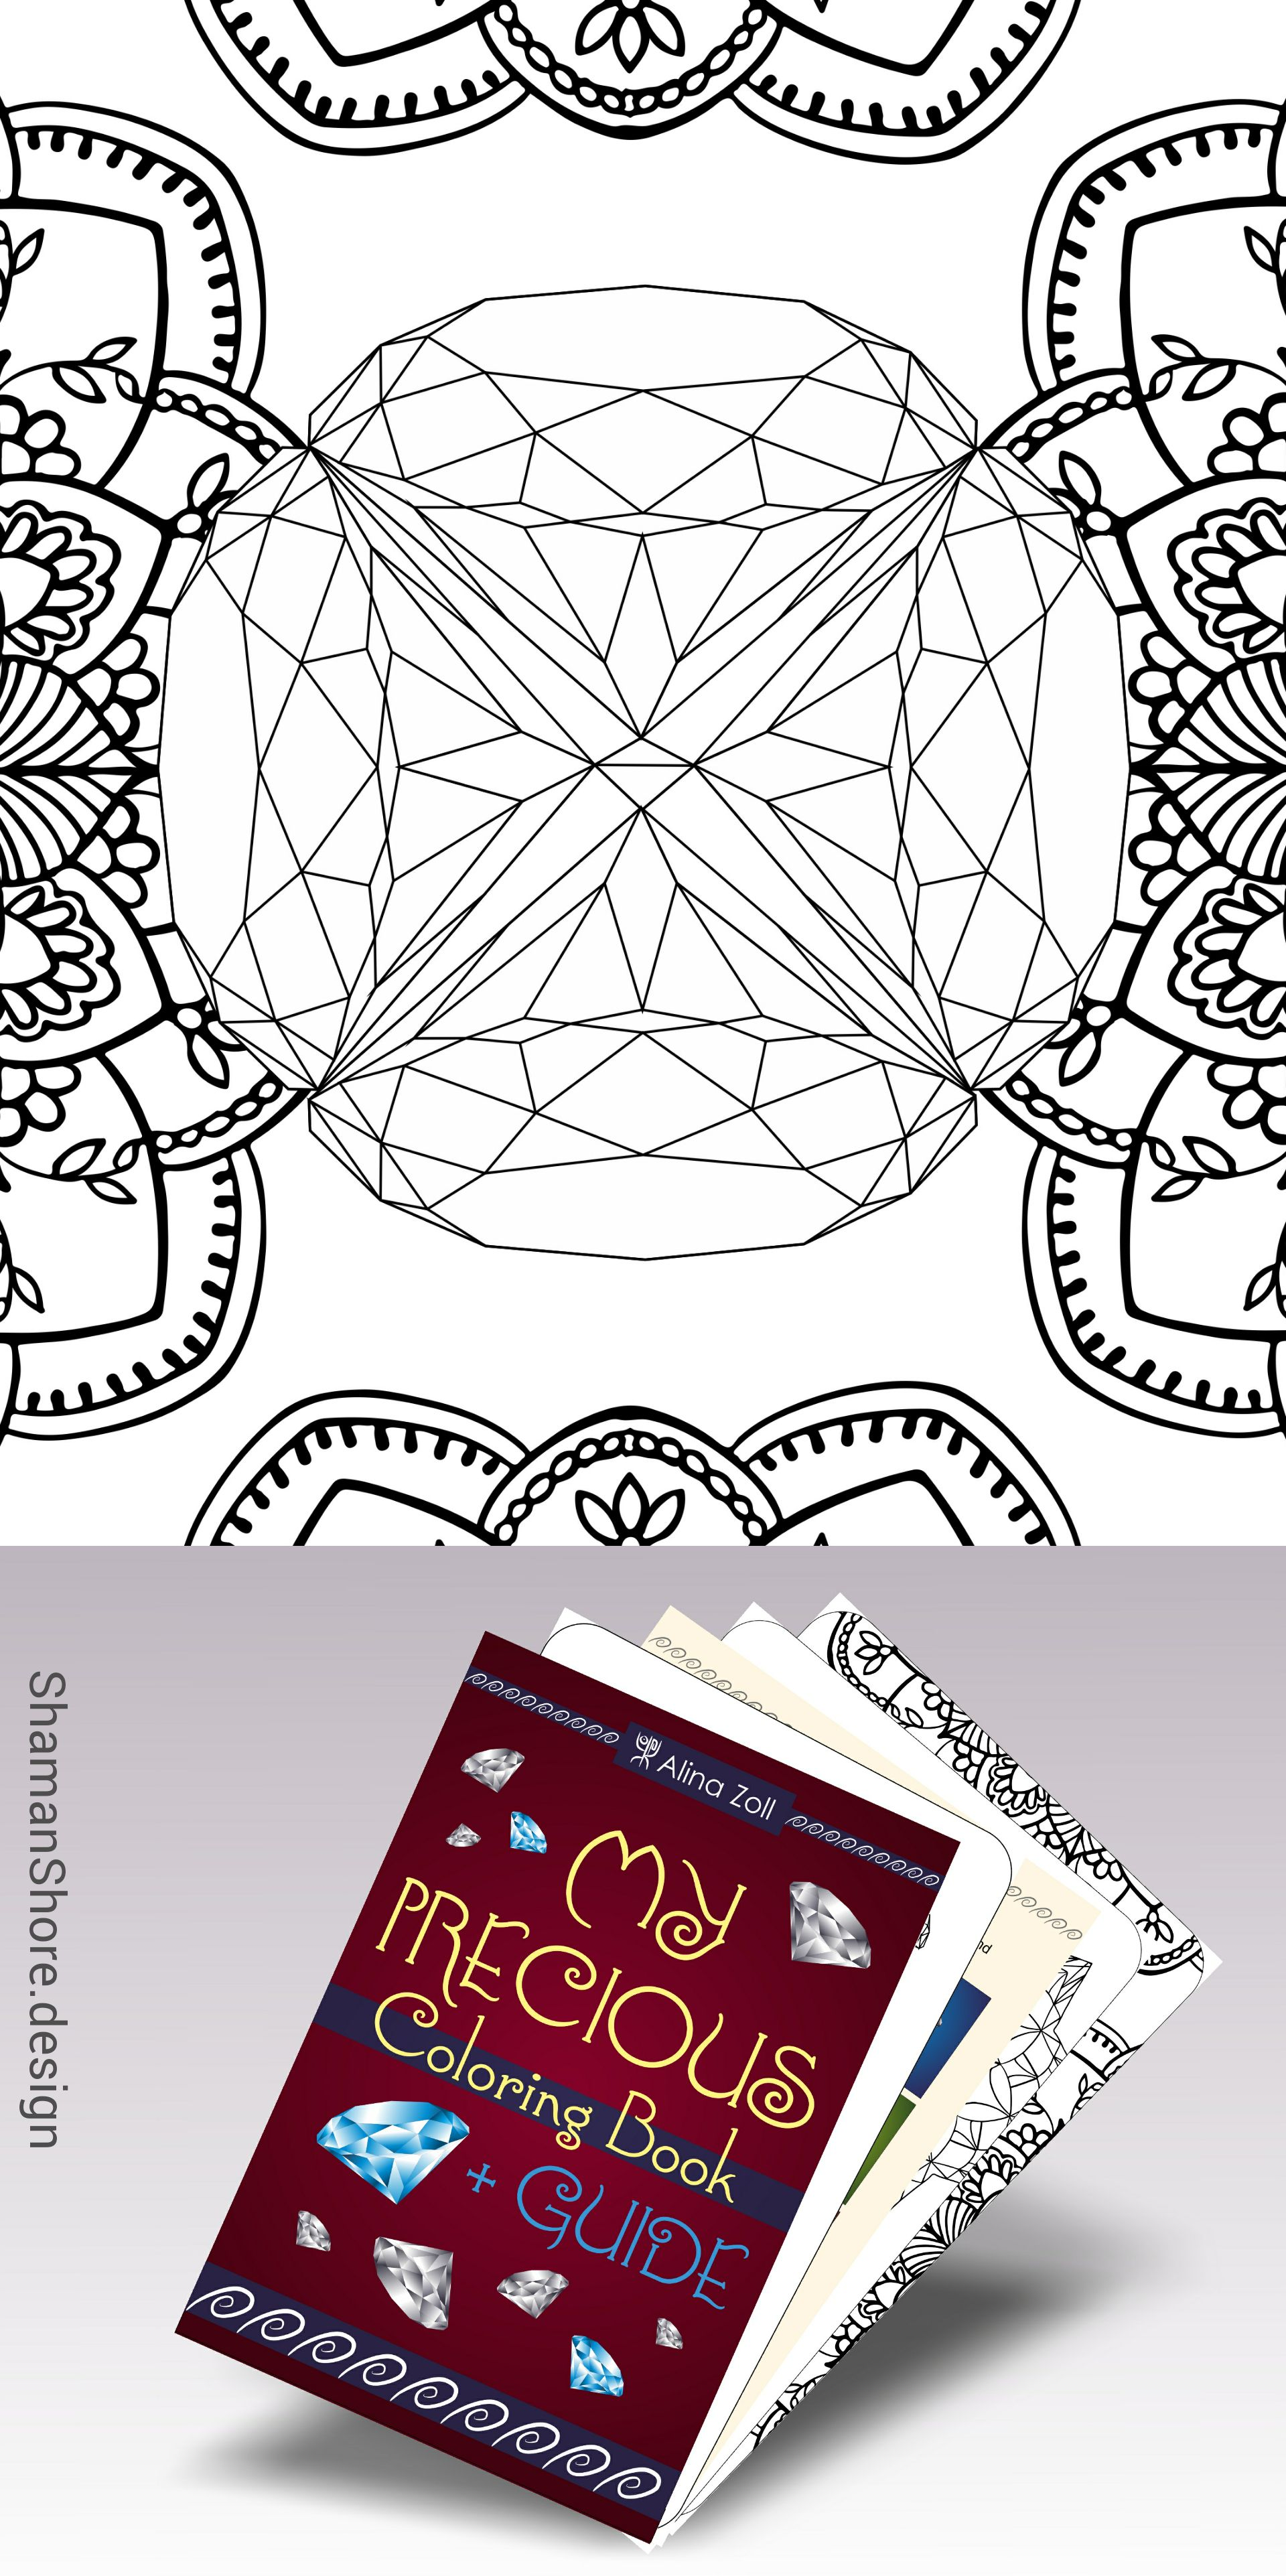 Printable Gemstone Coloring Pages For Grown Ups Diamond Tutorial Adult Book On Etsy ShShPrintables